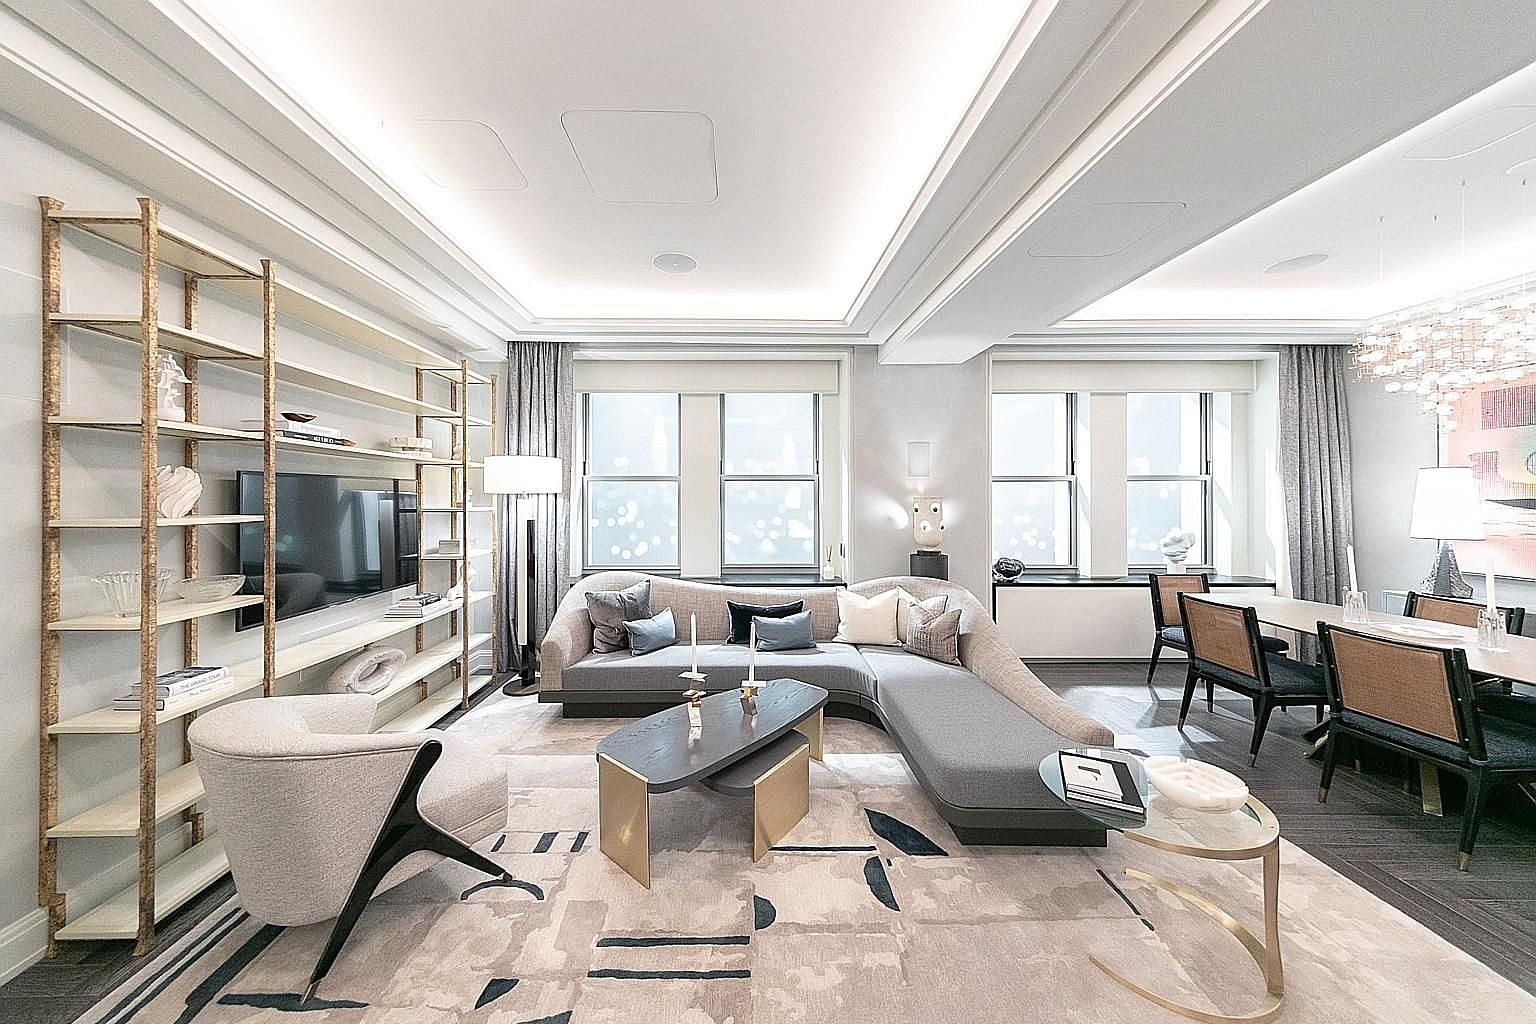 The living and dining room of a model apartment at the Towers of the Waldorf Astoria sales office in New York. The famed Art Deco hotel, sold for US$1.95 billion to China's Anbang Insurance in 2015, has been refurbished and partially converted into condom